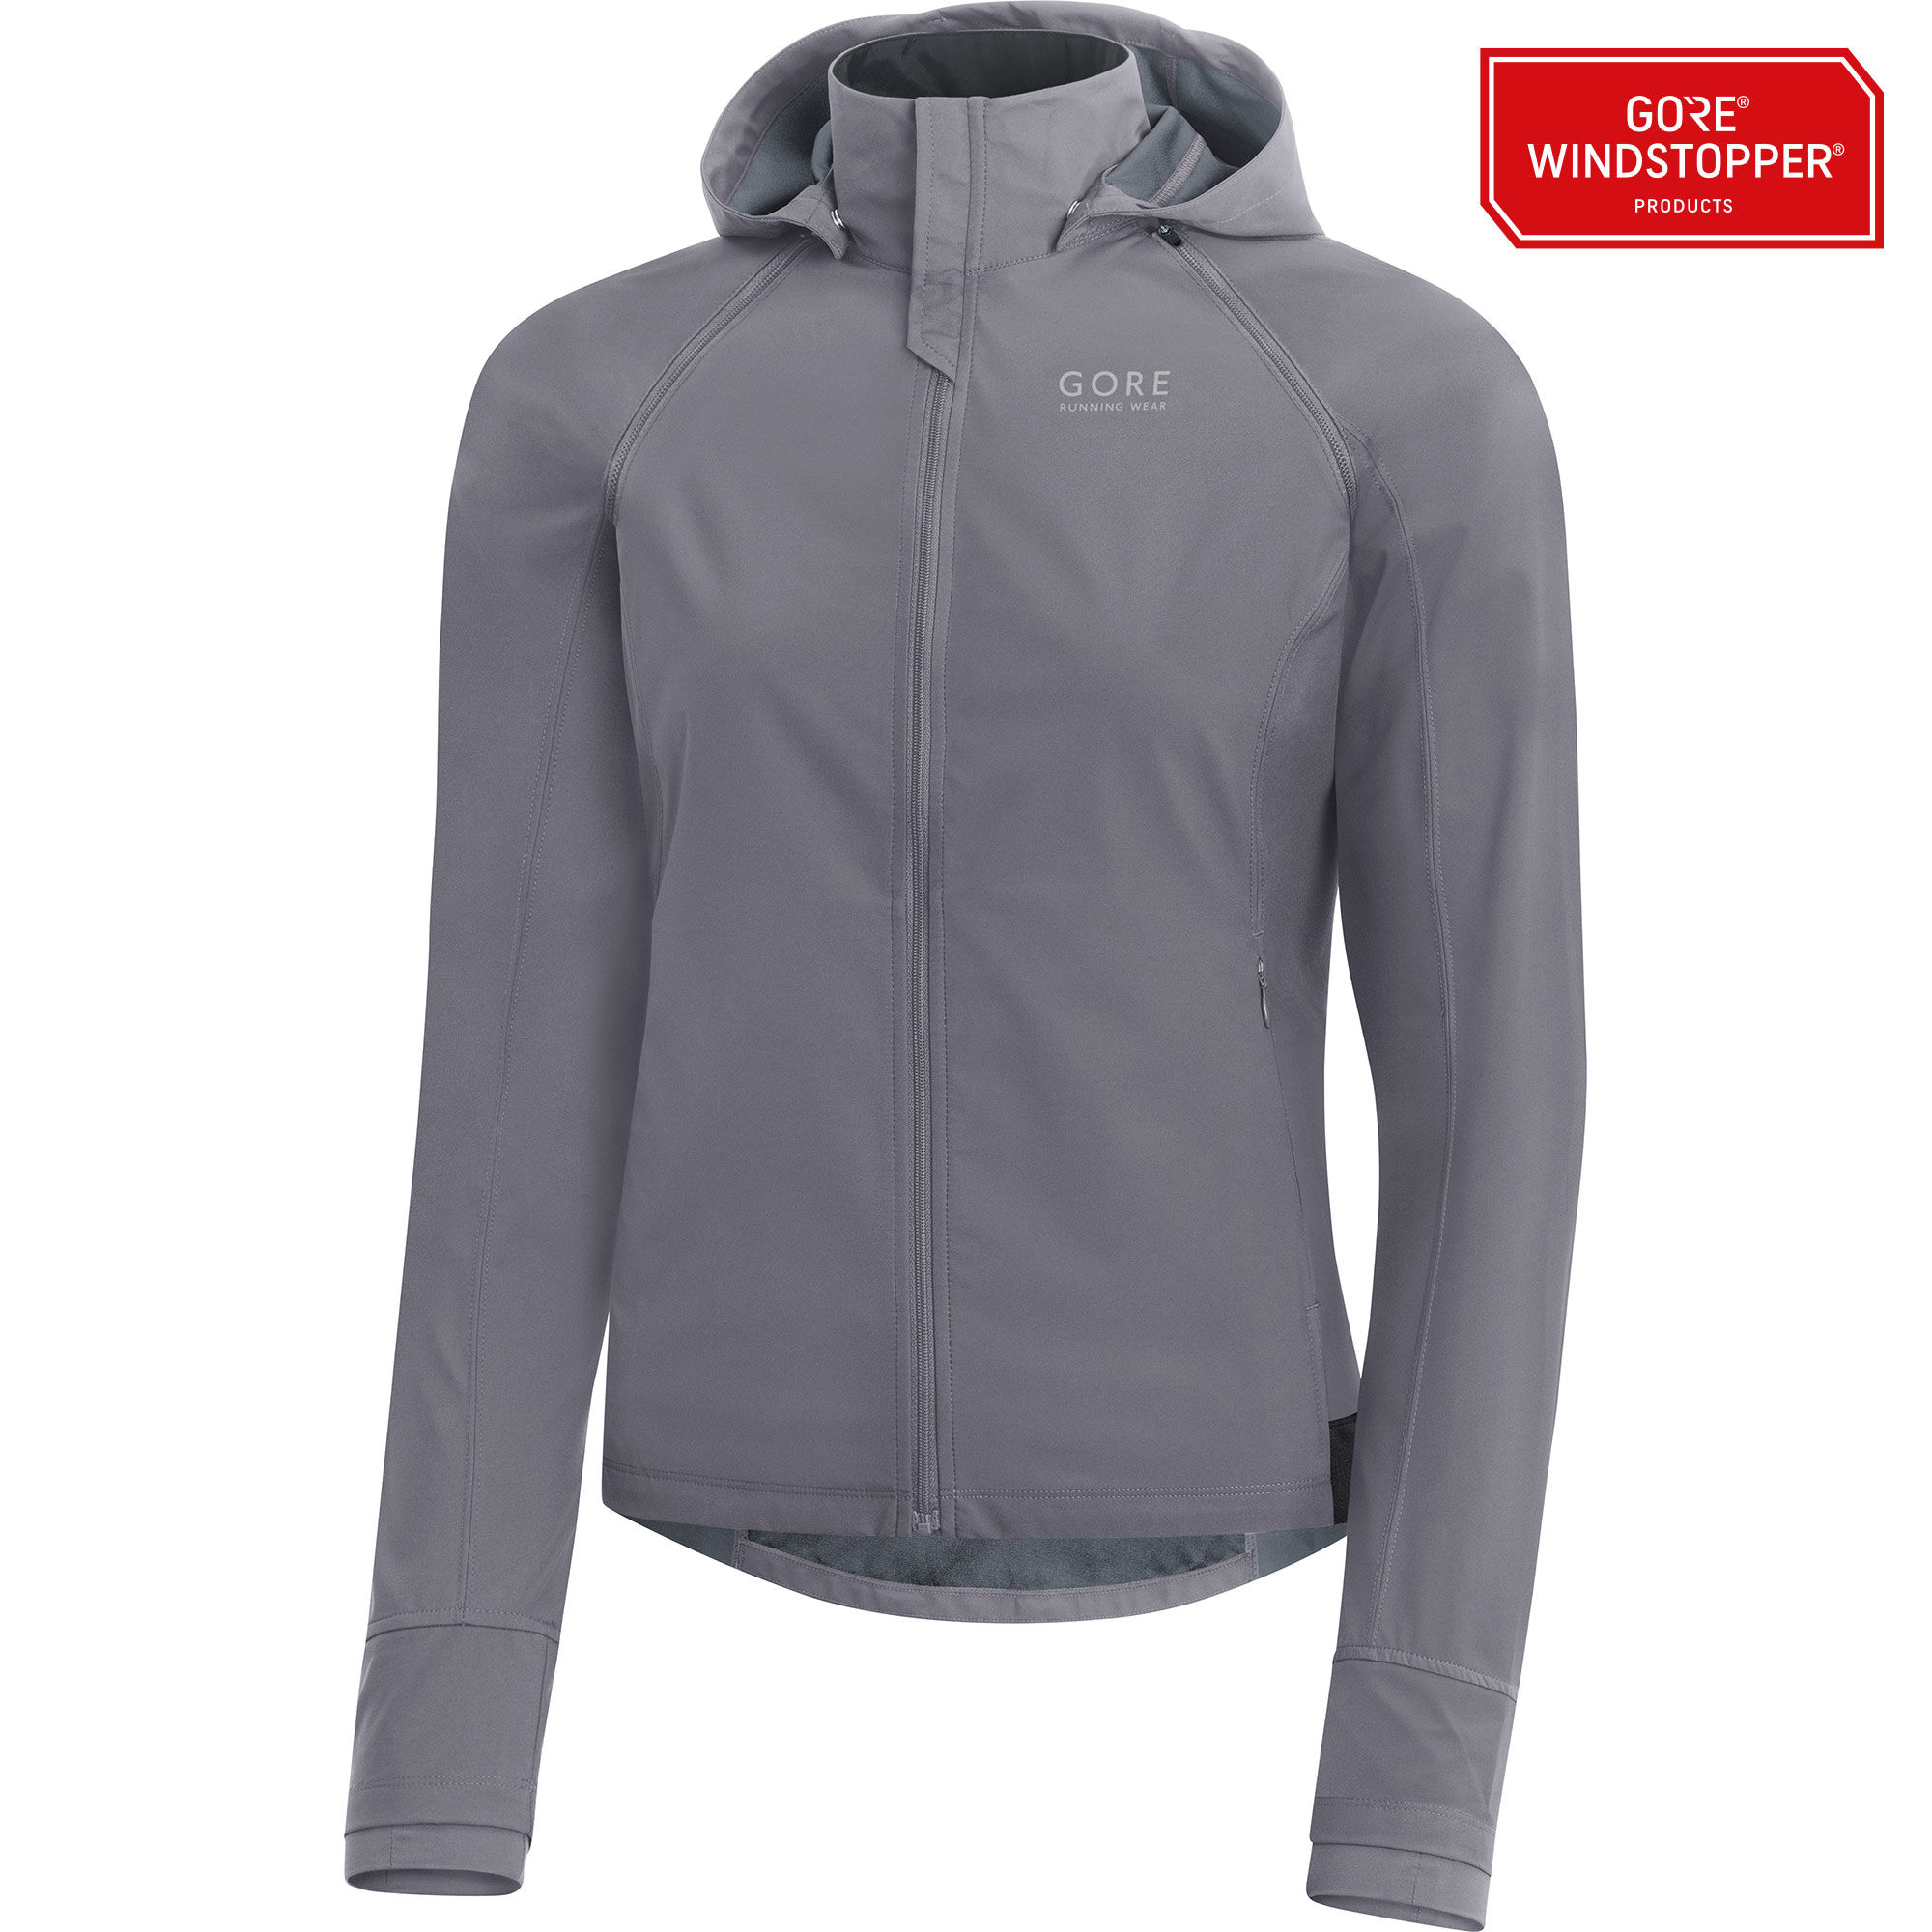 Gore Essential Lady GWS Zip-off Jacket in Grau